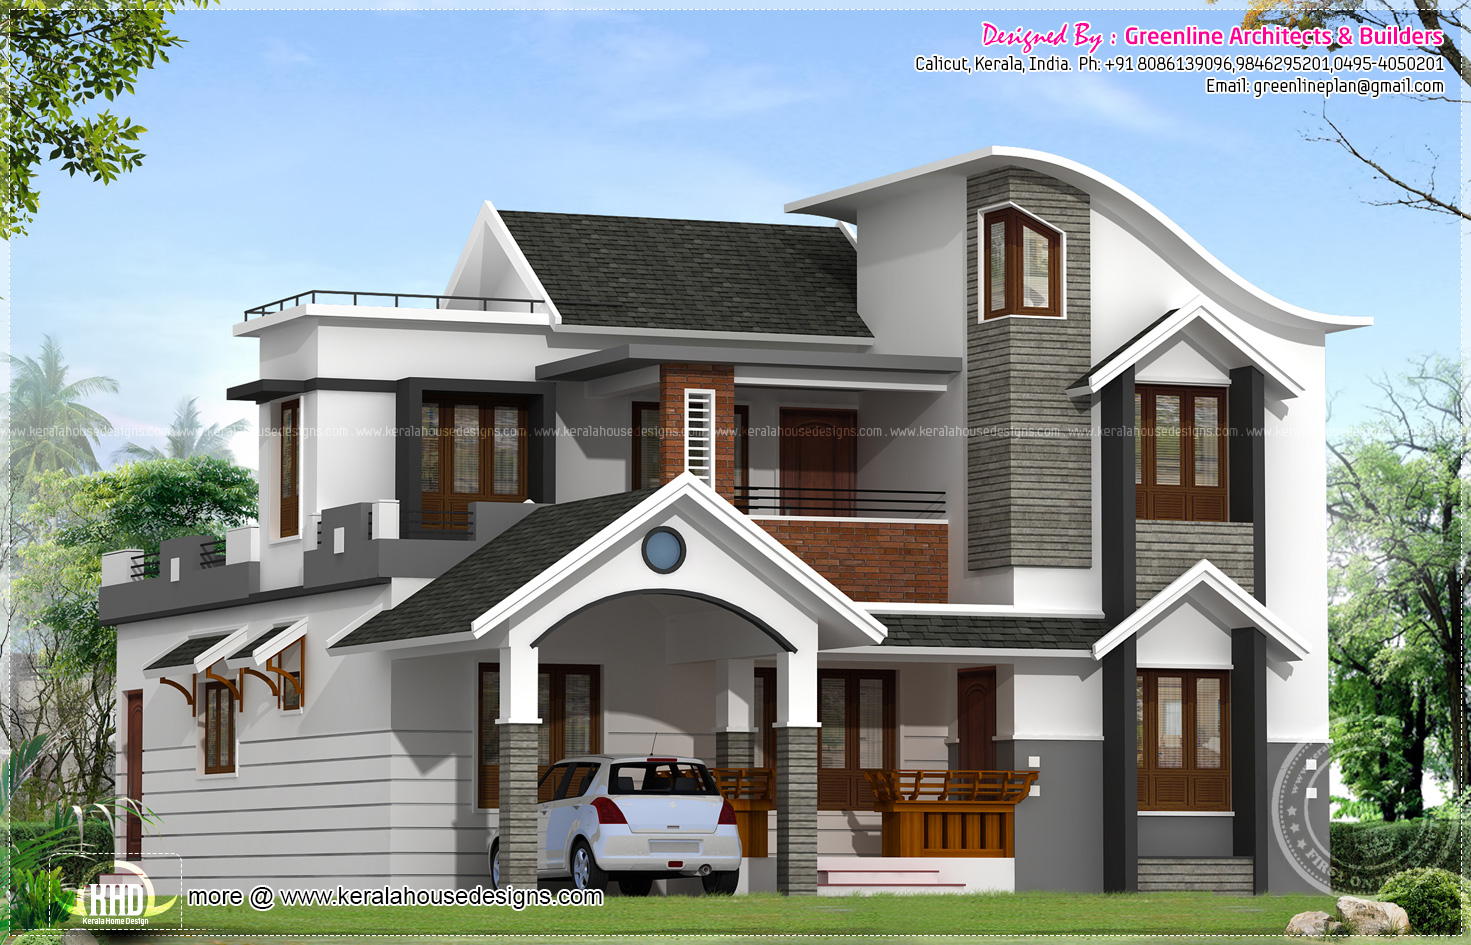 Modern house architecture in kerala house design plans for Kerala house plans 2014